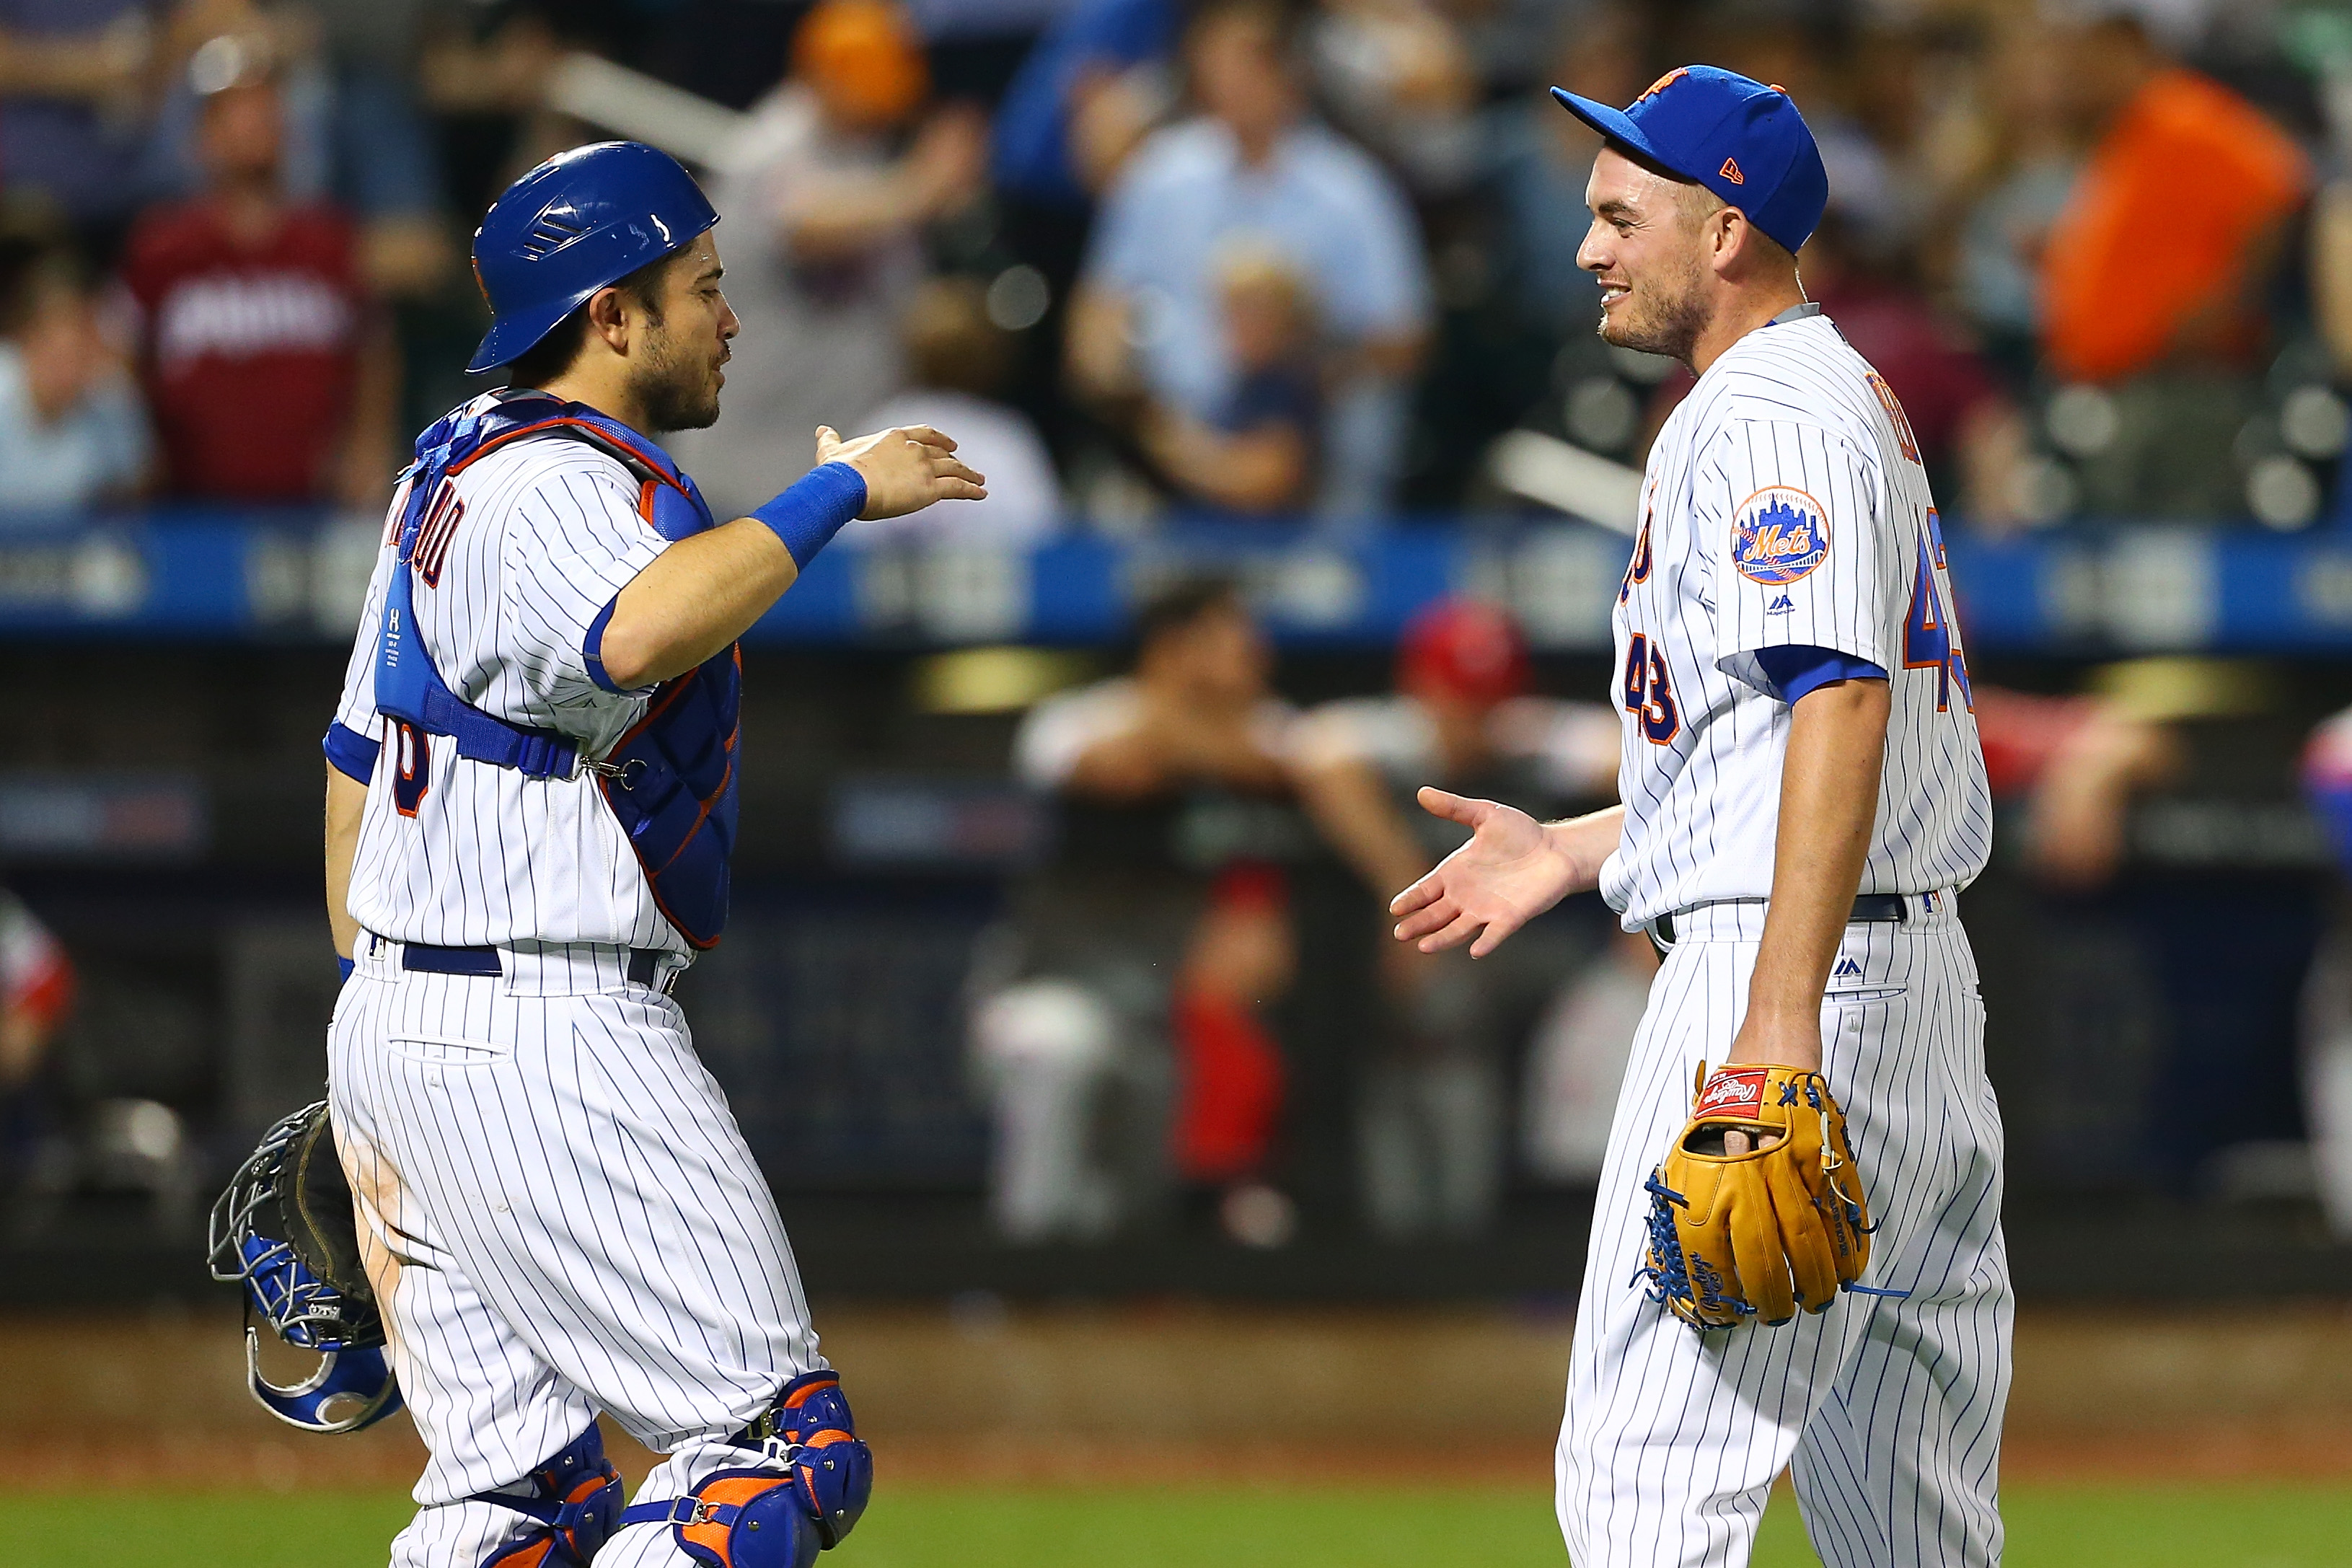 Mets LF Rivera injured vs. Nationals